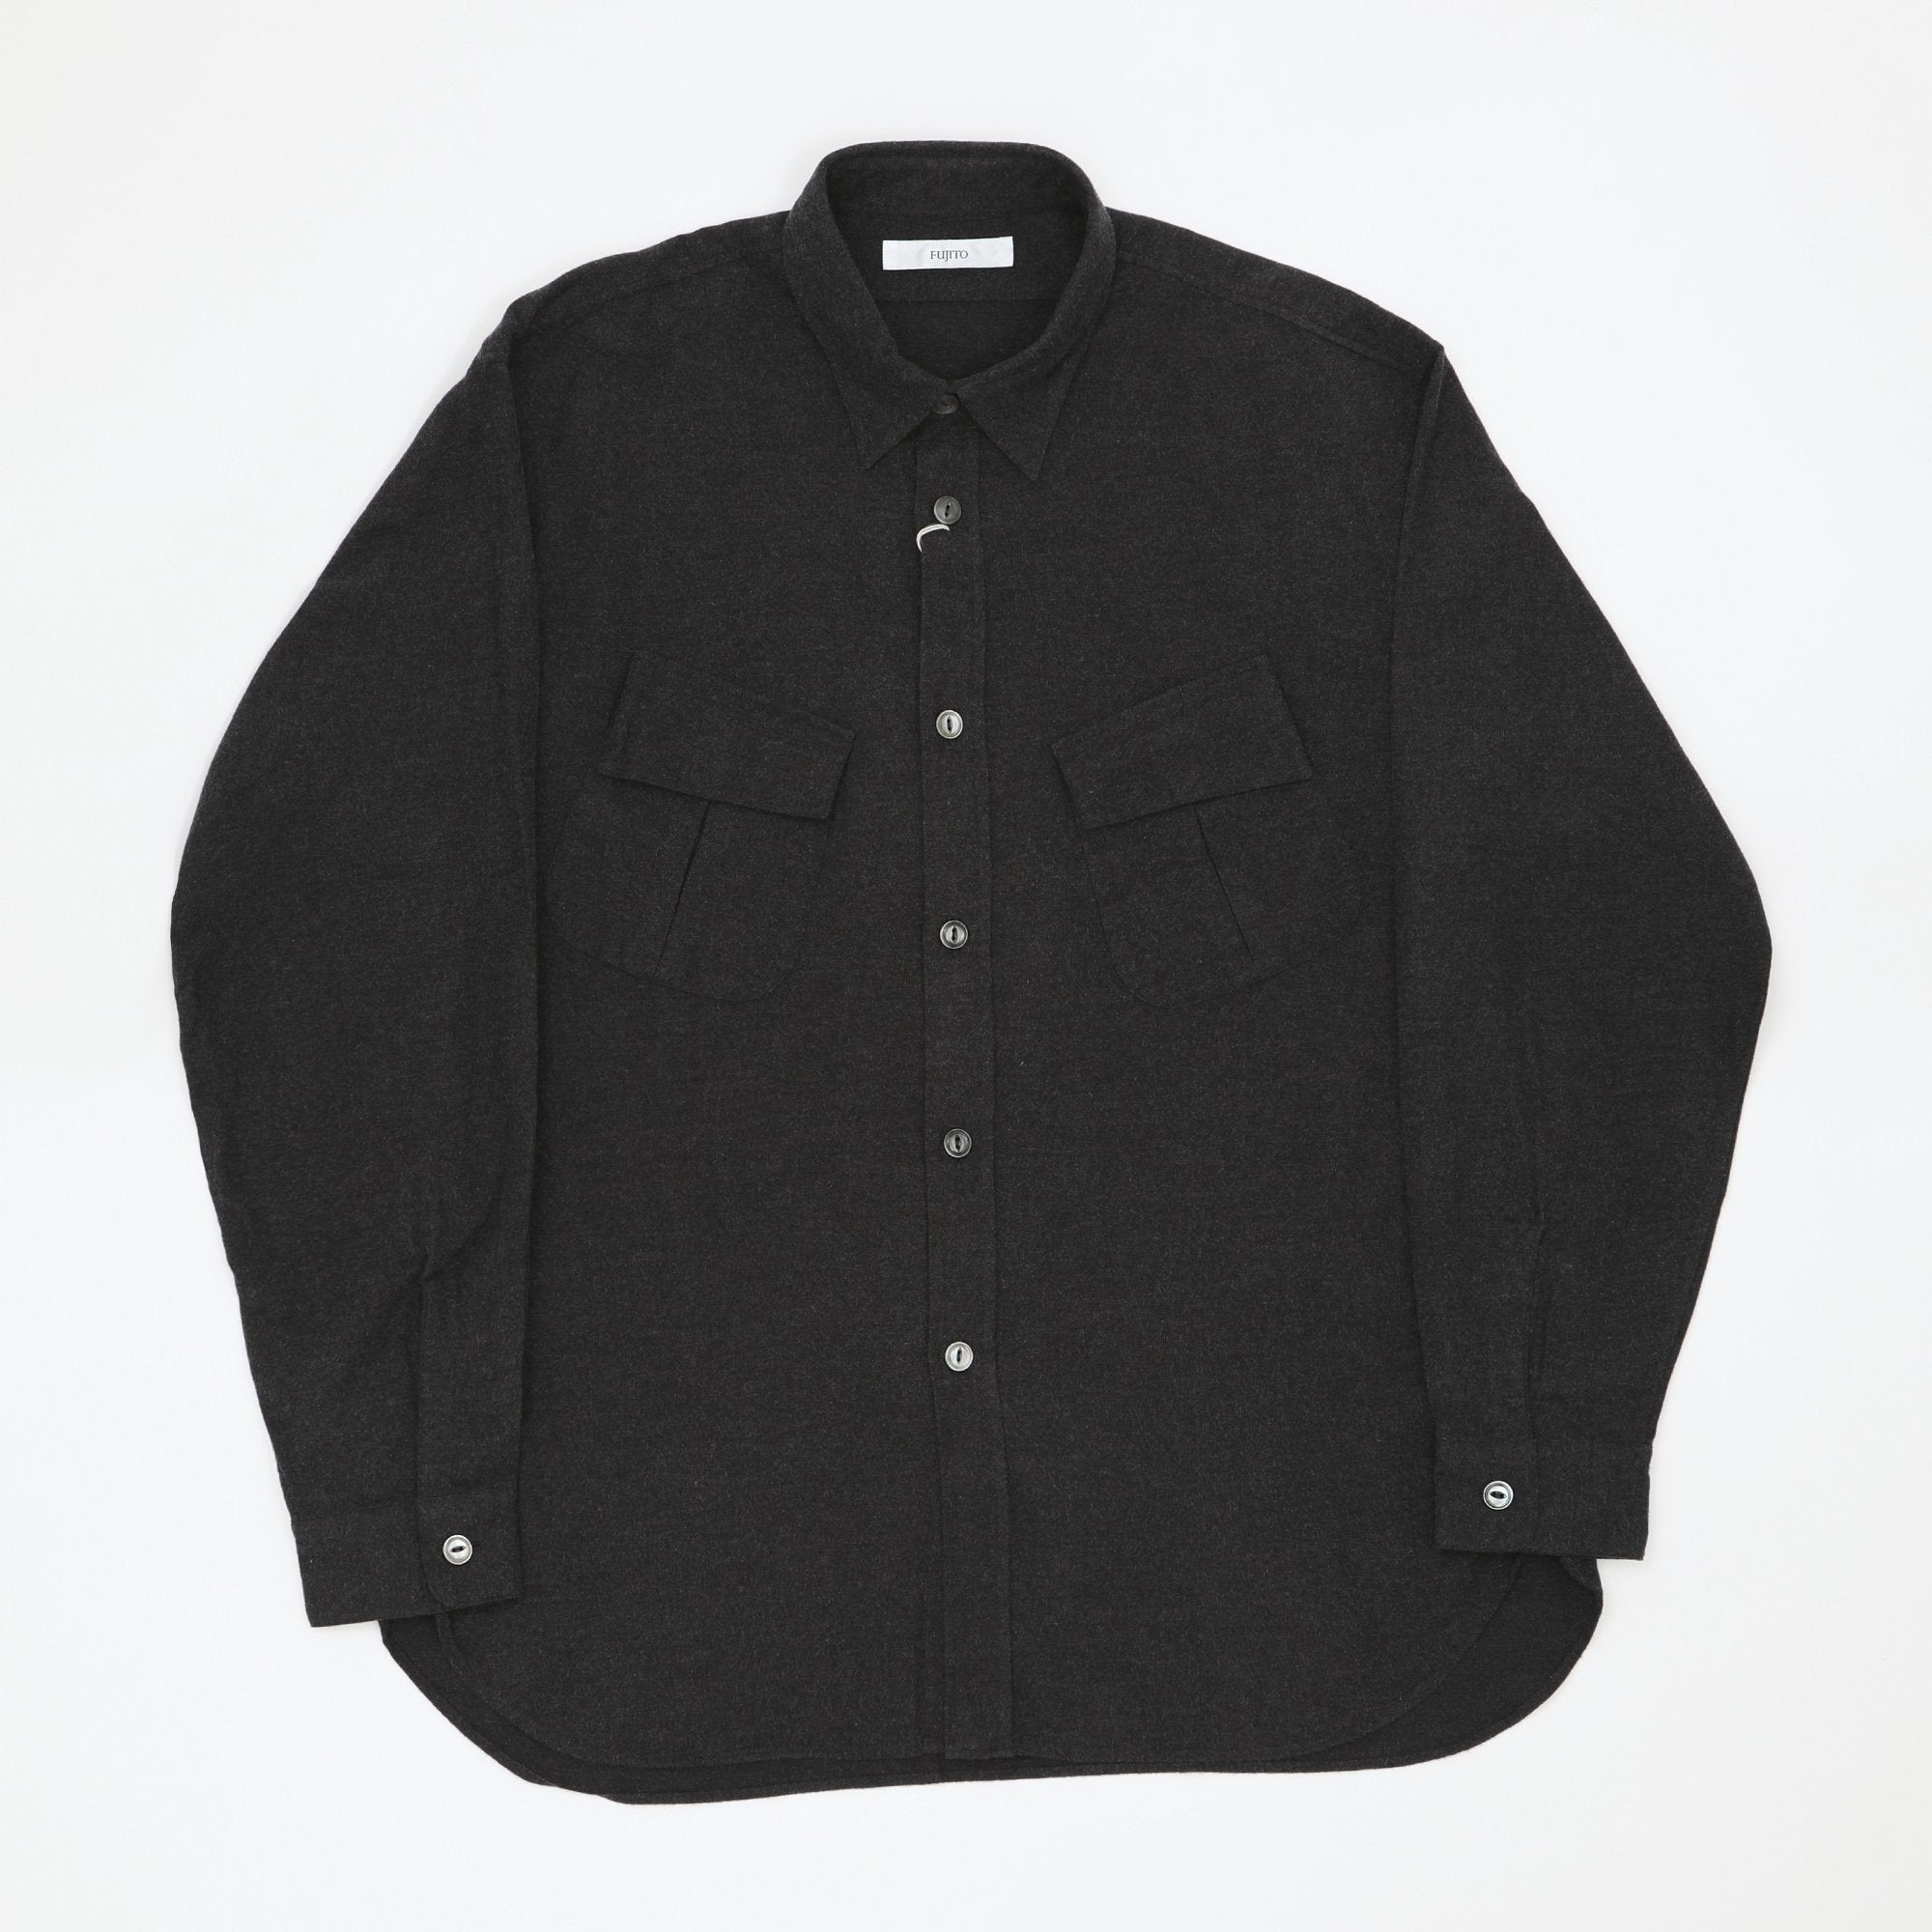 fujito-fatigue-shirt-charcoal-202-sunnysiders.jpg